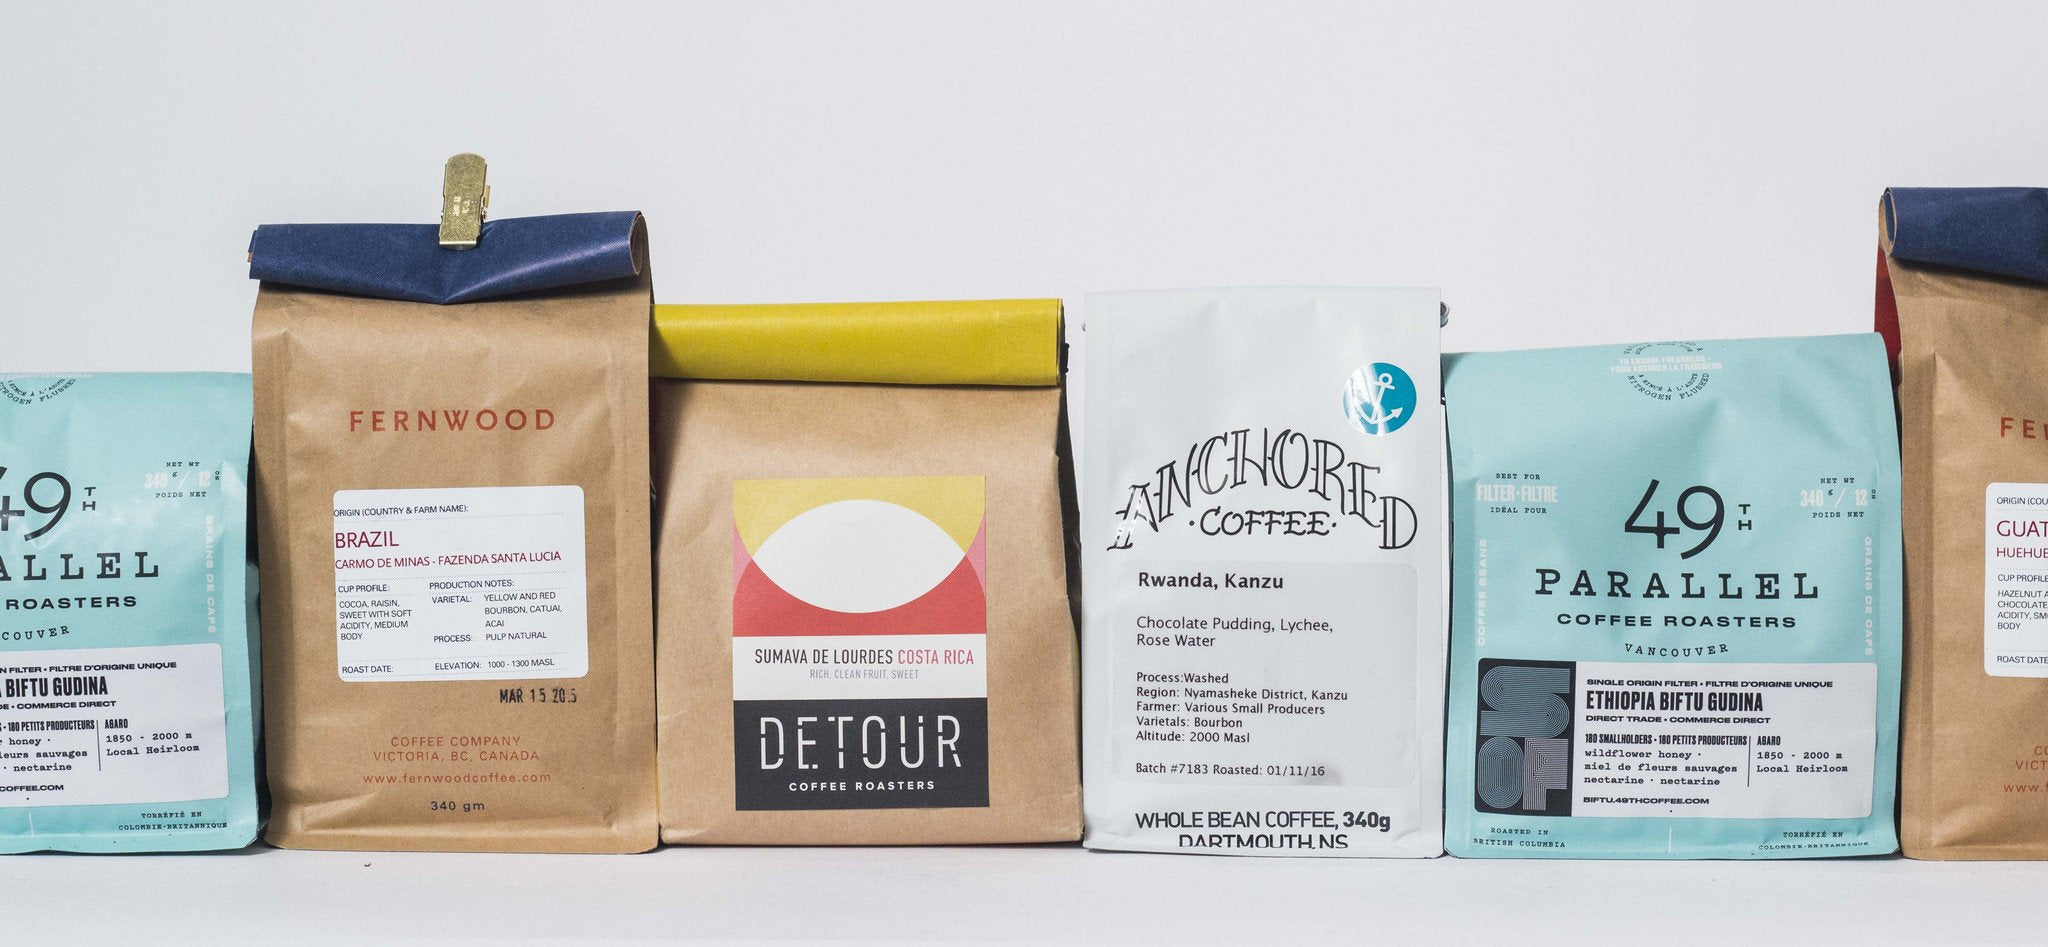 GIFT IT - THE BEST ESPRESSO ROASTS